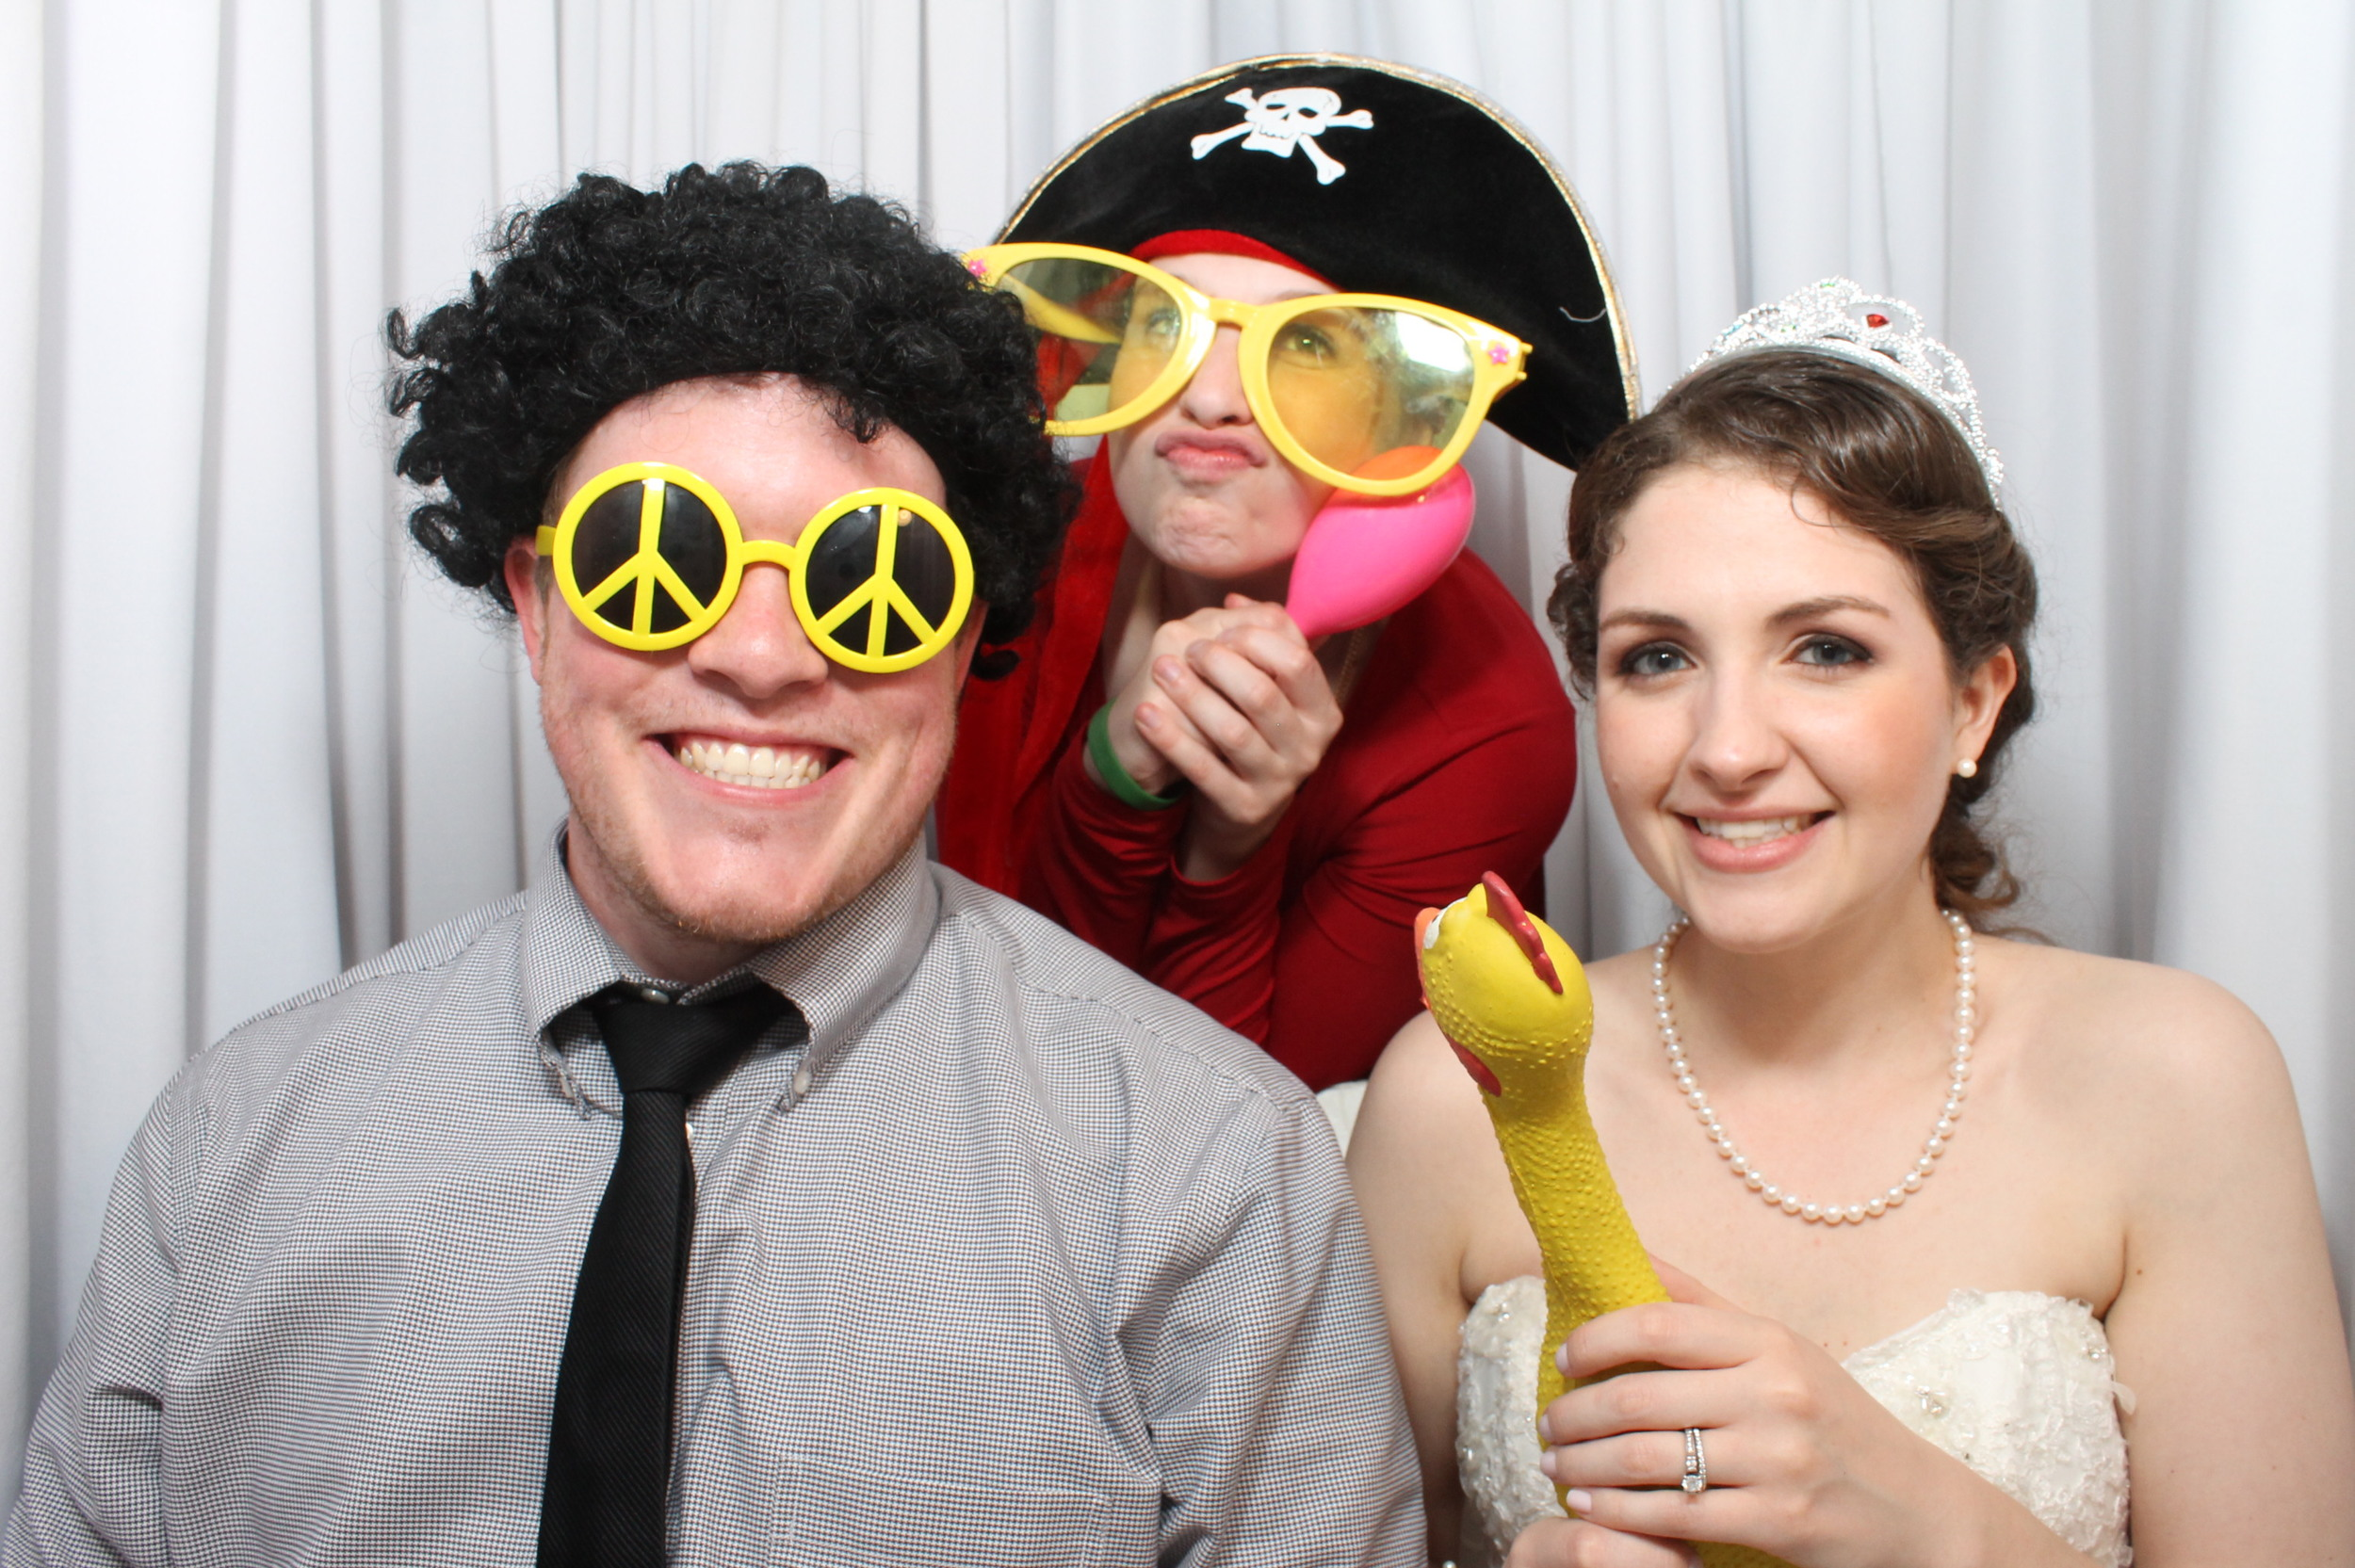 Snapshot Photobooth at the DoubleTree in Tinton Falls, New Jersey